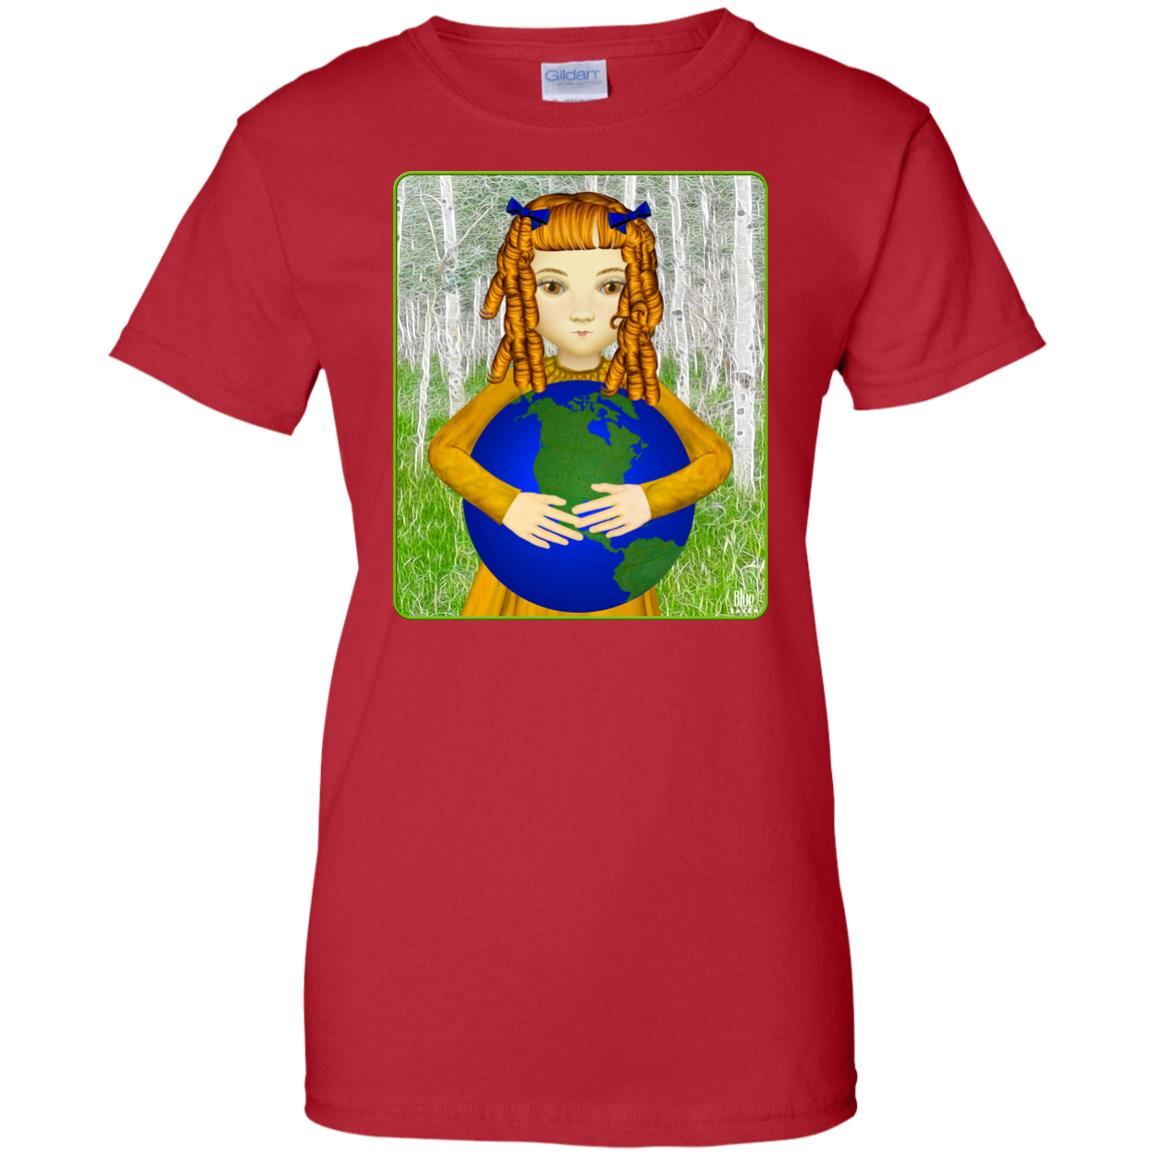 Save My World - Women's Relaxed Fit T-Shirt